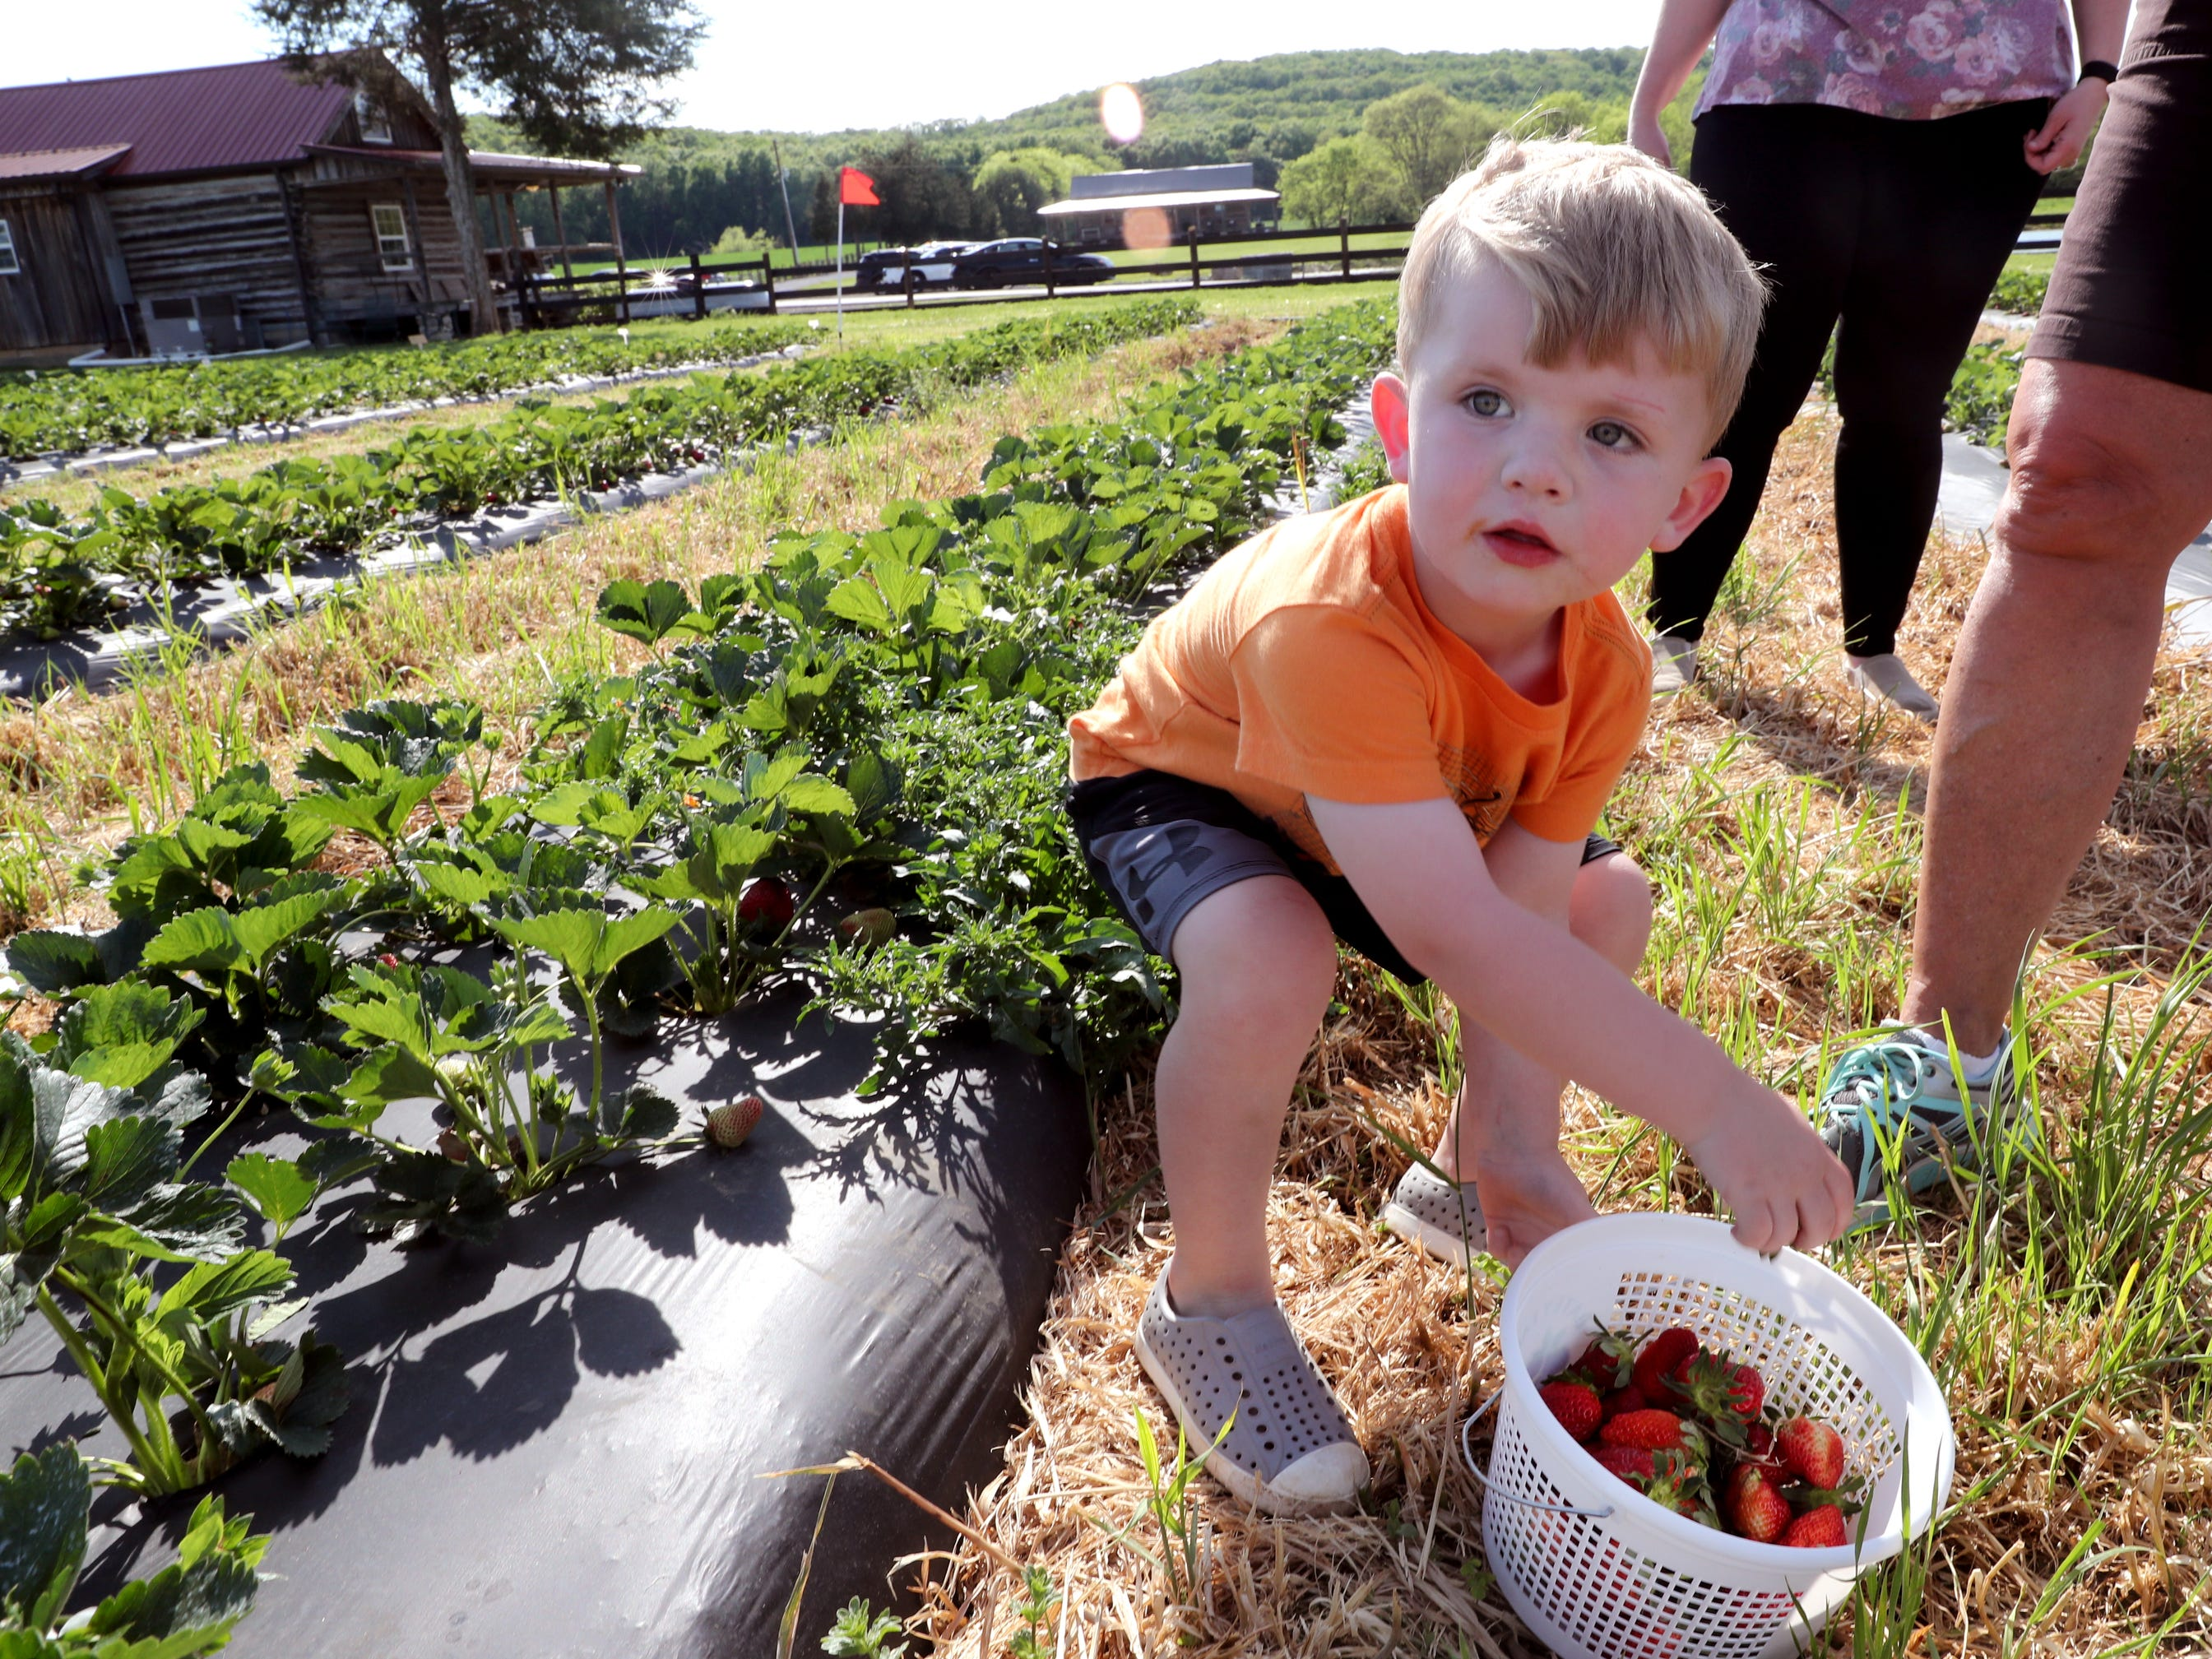 Rhett Trotter, 3, picks a basket of strawberries on Wednesday April 24, 2019, at Batey Farms in Murfreesboro.